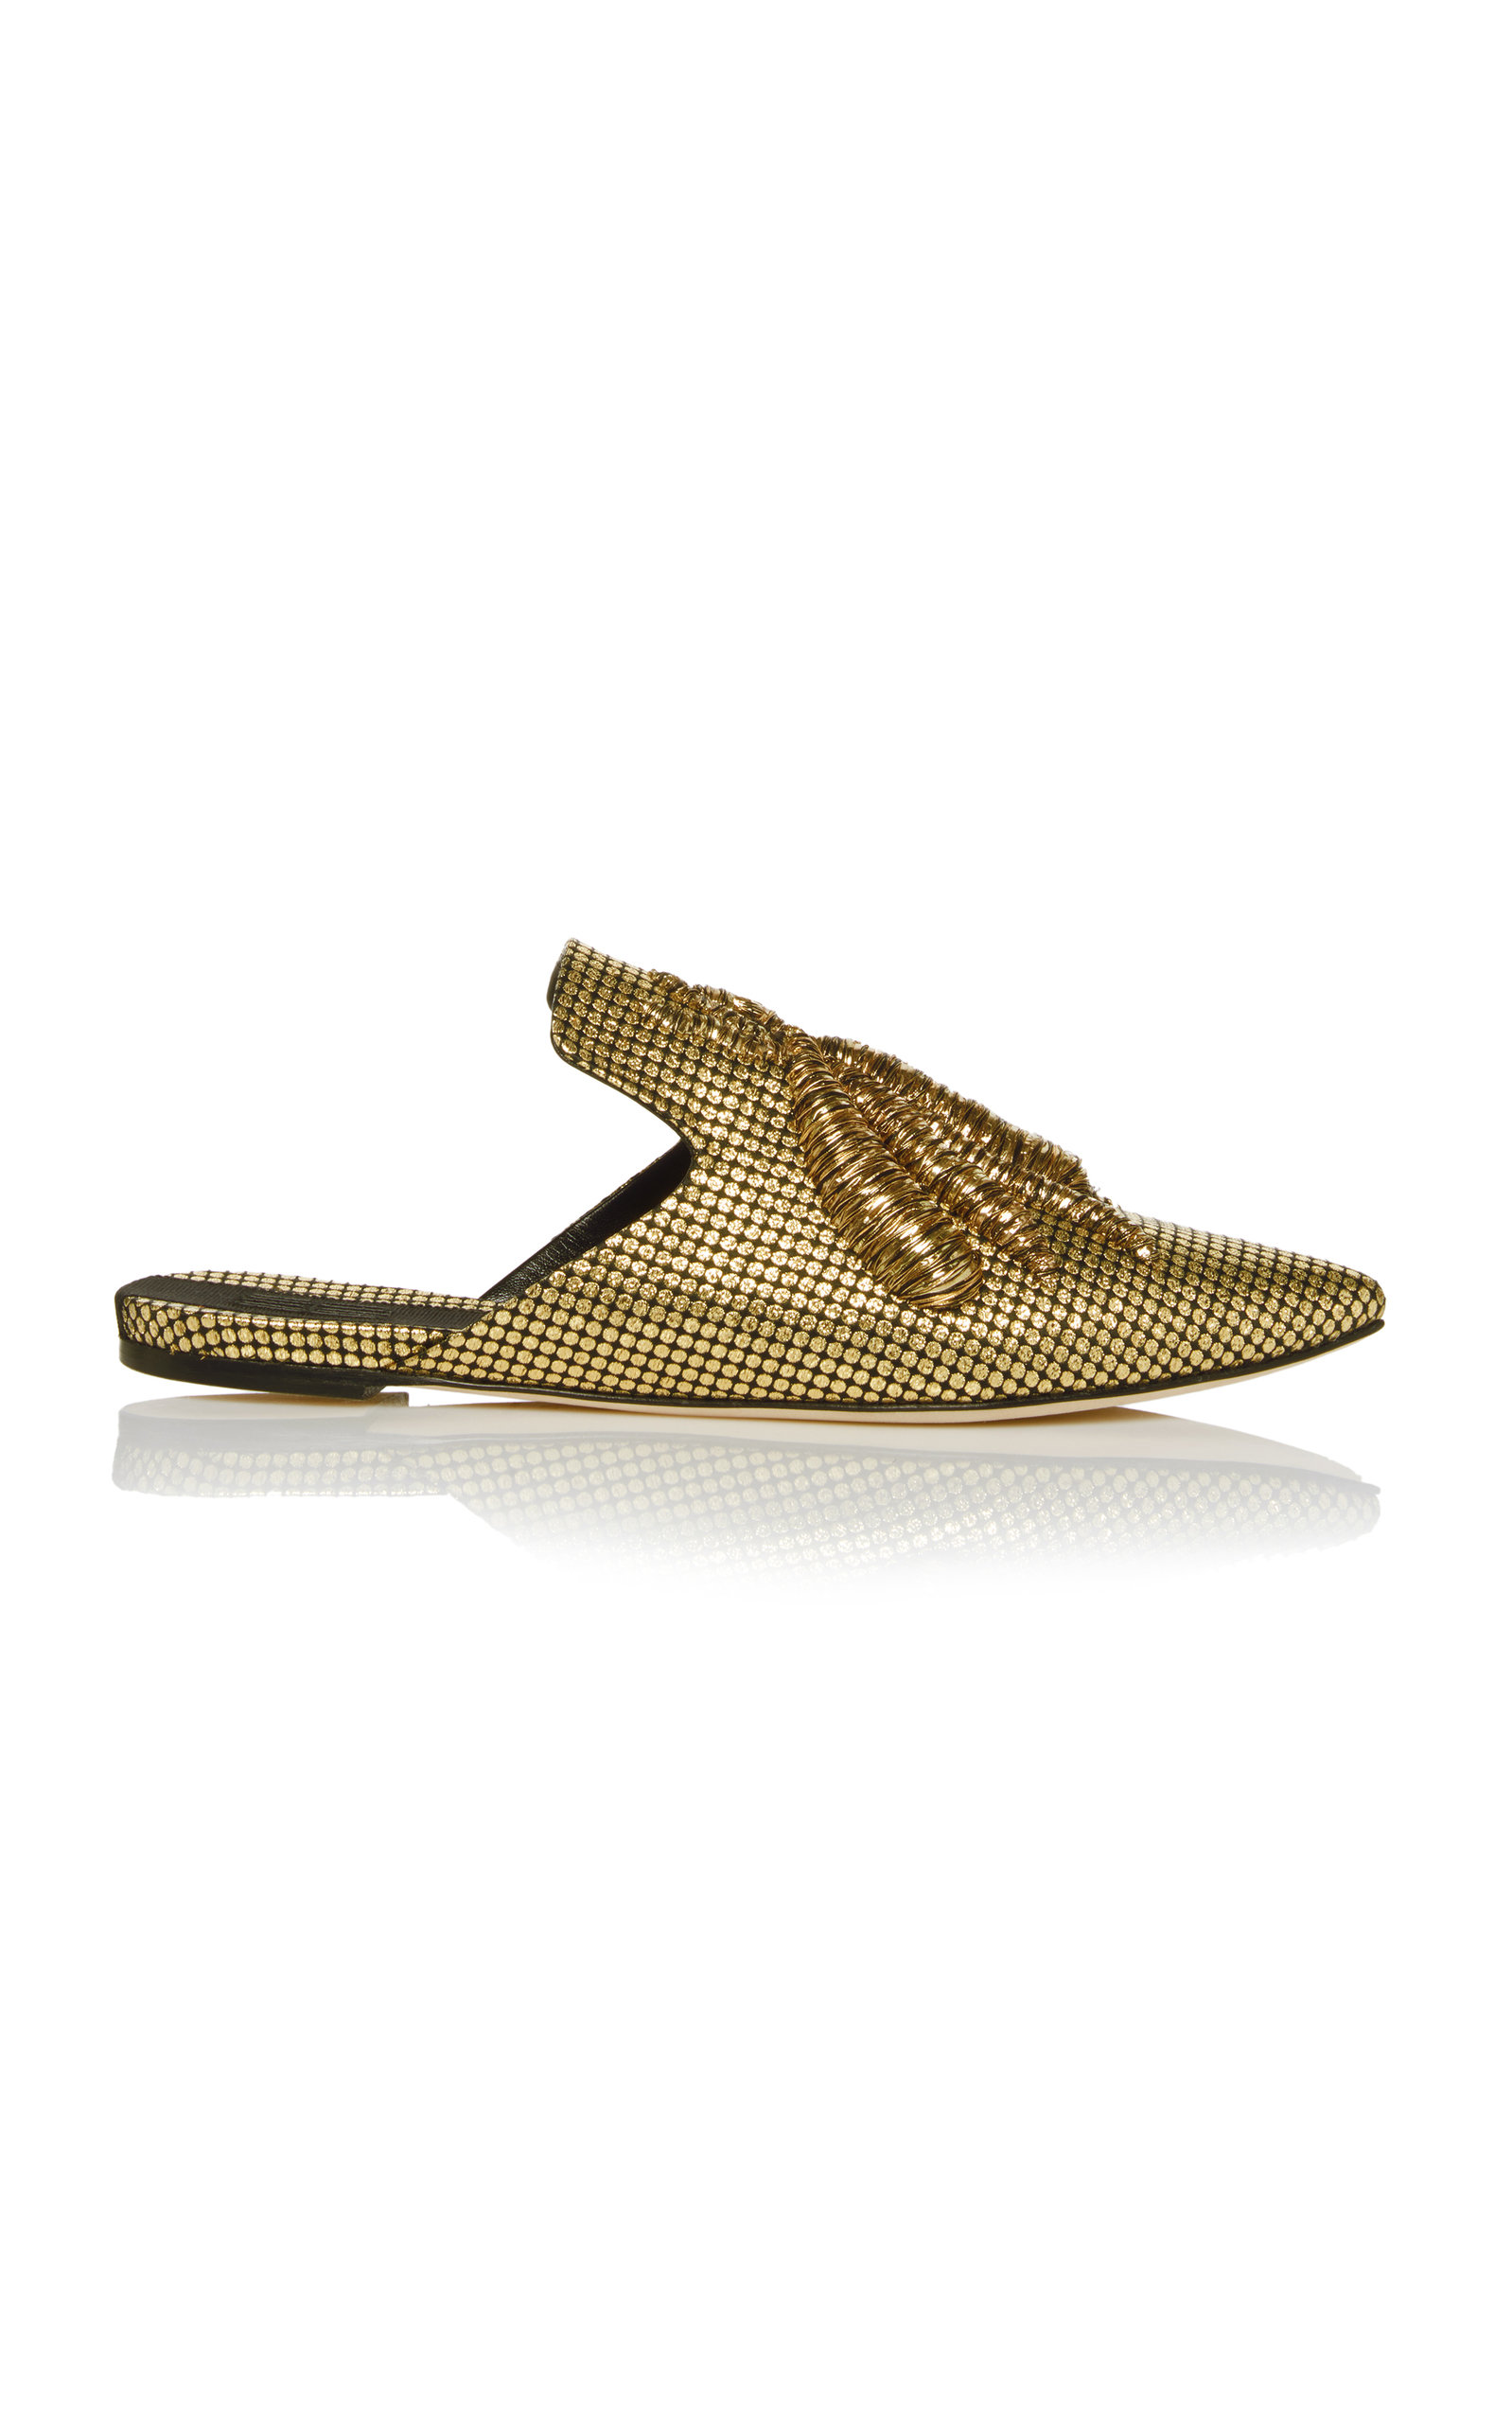 Ragno Striped Gold Flat Slippers Sanayi 313 JrC1P